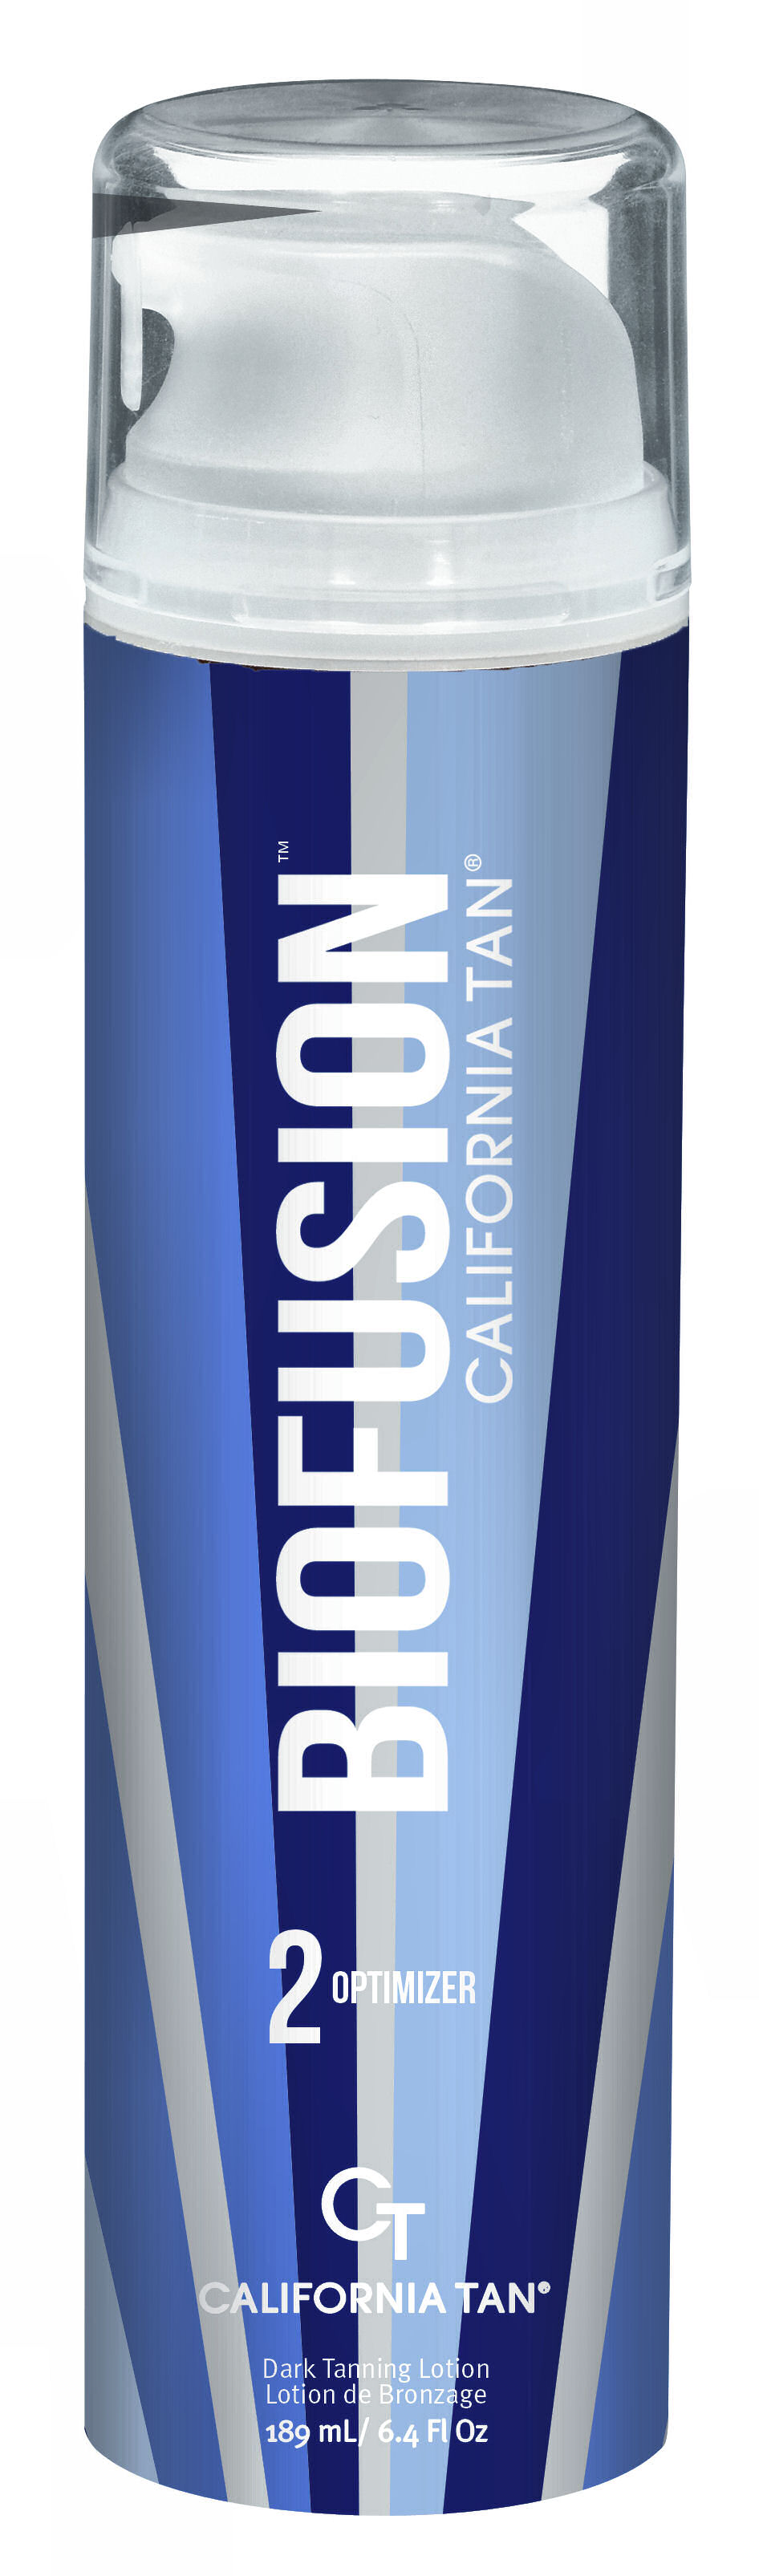 Biofusion™ Optimizer BioRenewal Factor™ Bronzing Gel